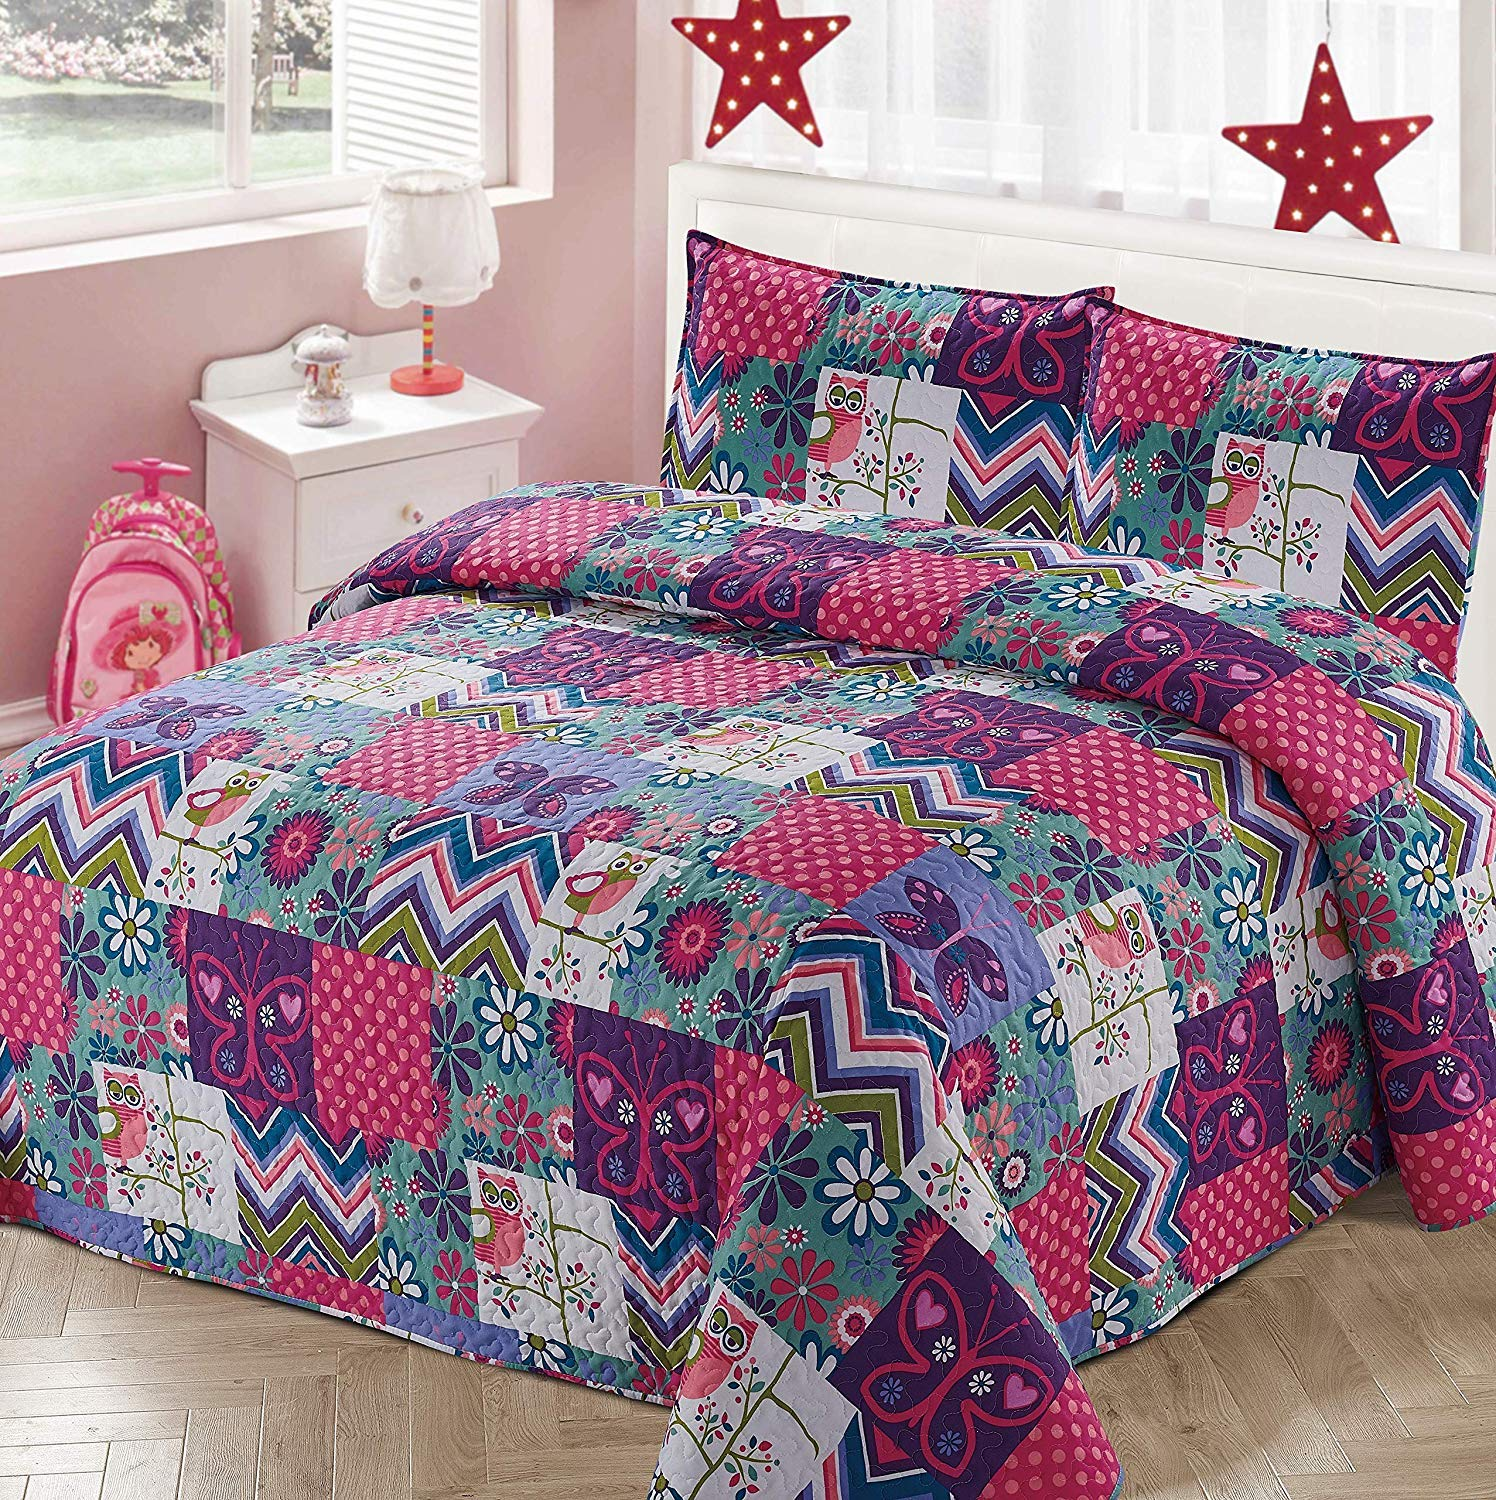 Luxury Home Collection 2 Piece Twin Size Quilt Coverlet Bedspread Bedding Set for Kids Teens Girls Patchwork Butterfly Owls Flowers Hearts Pink Purple White Blue Green (Twin Size)